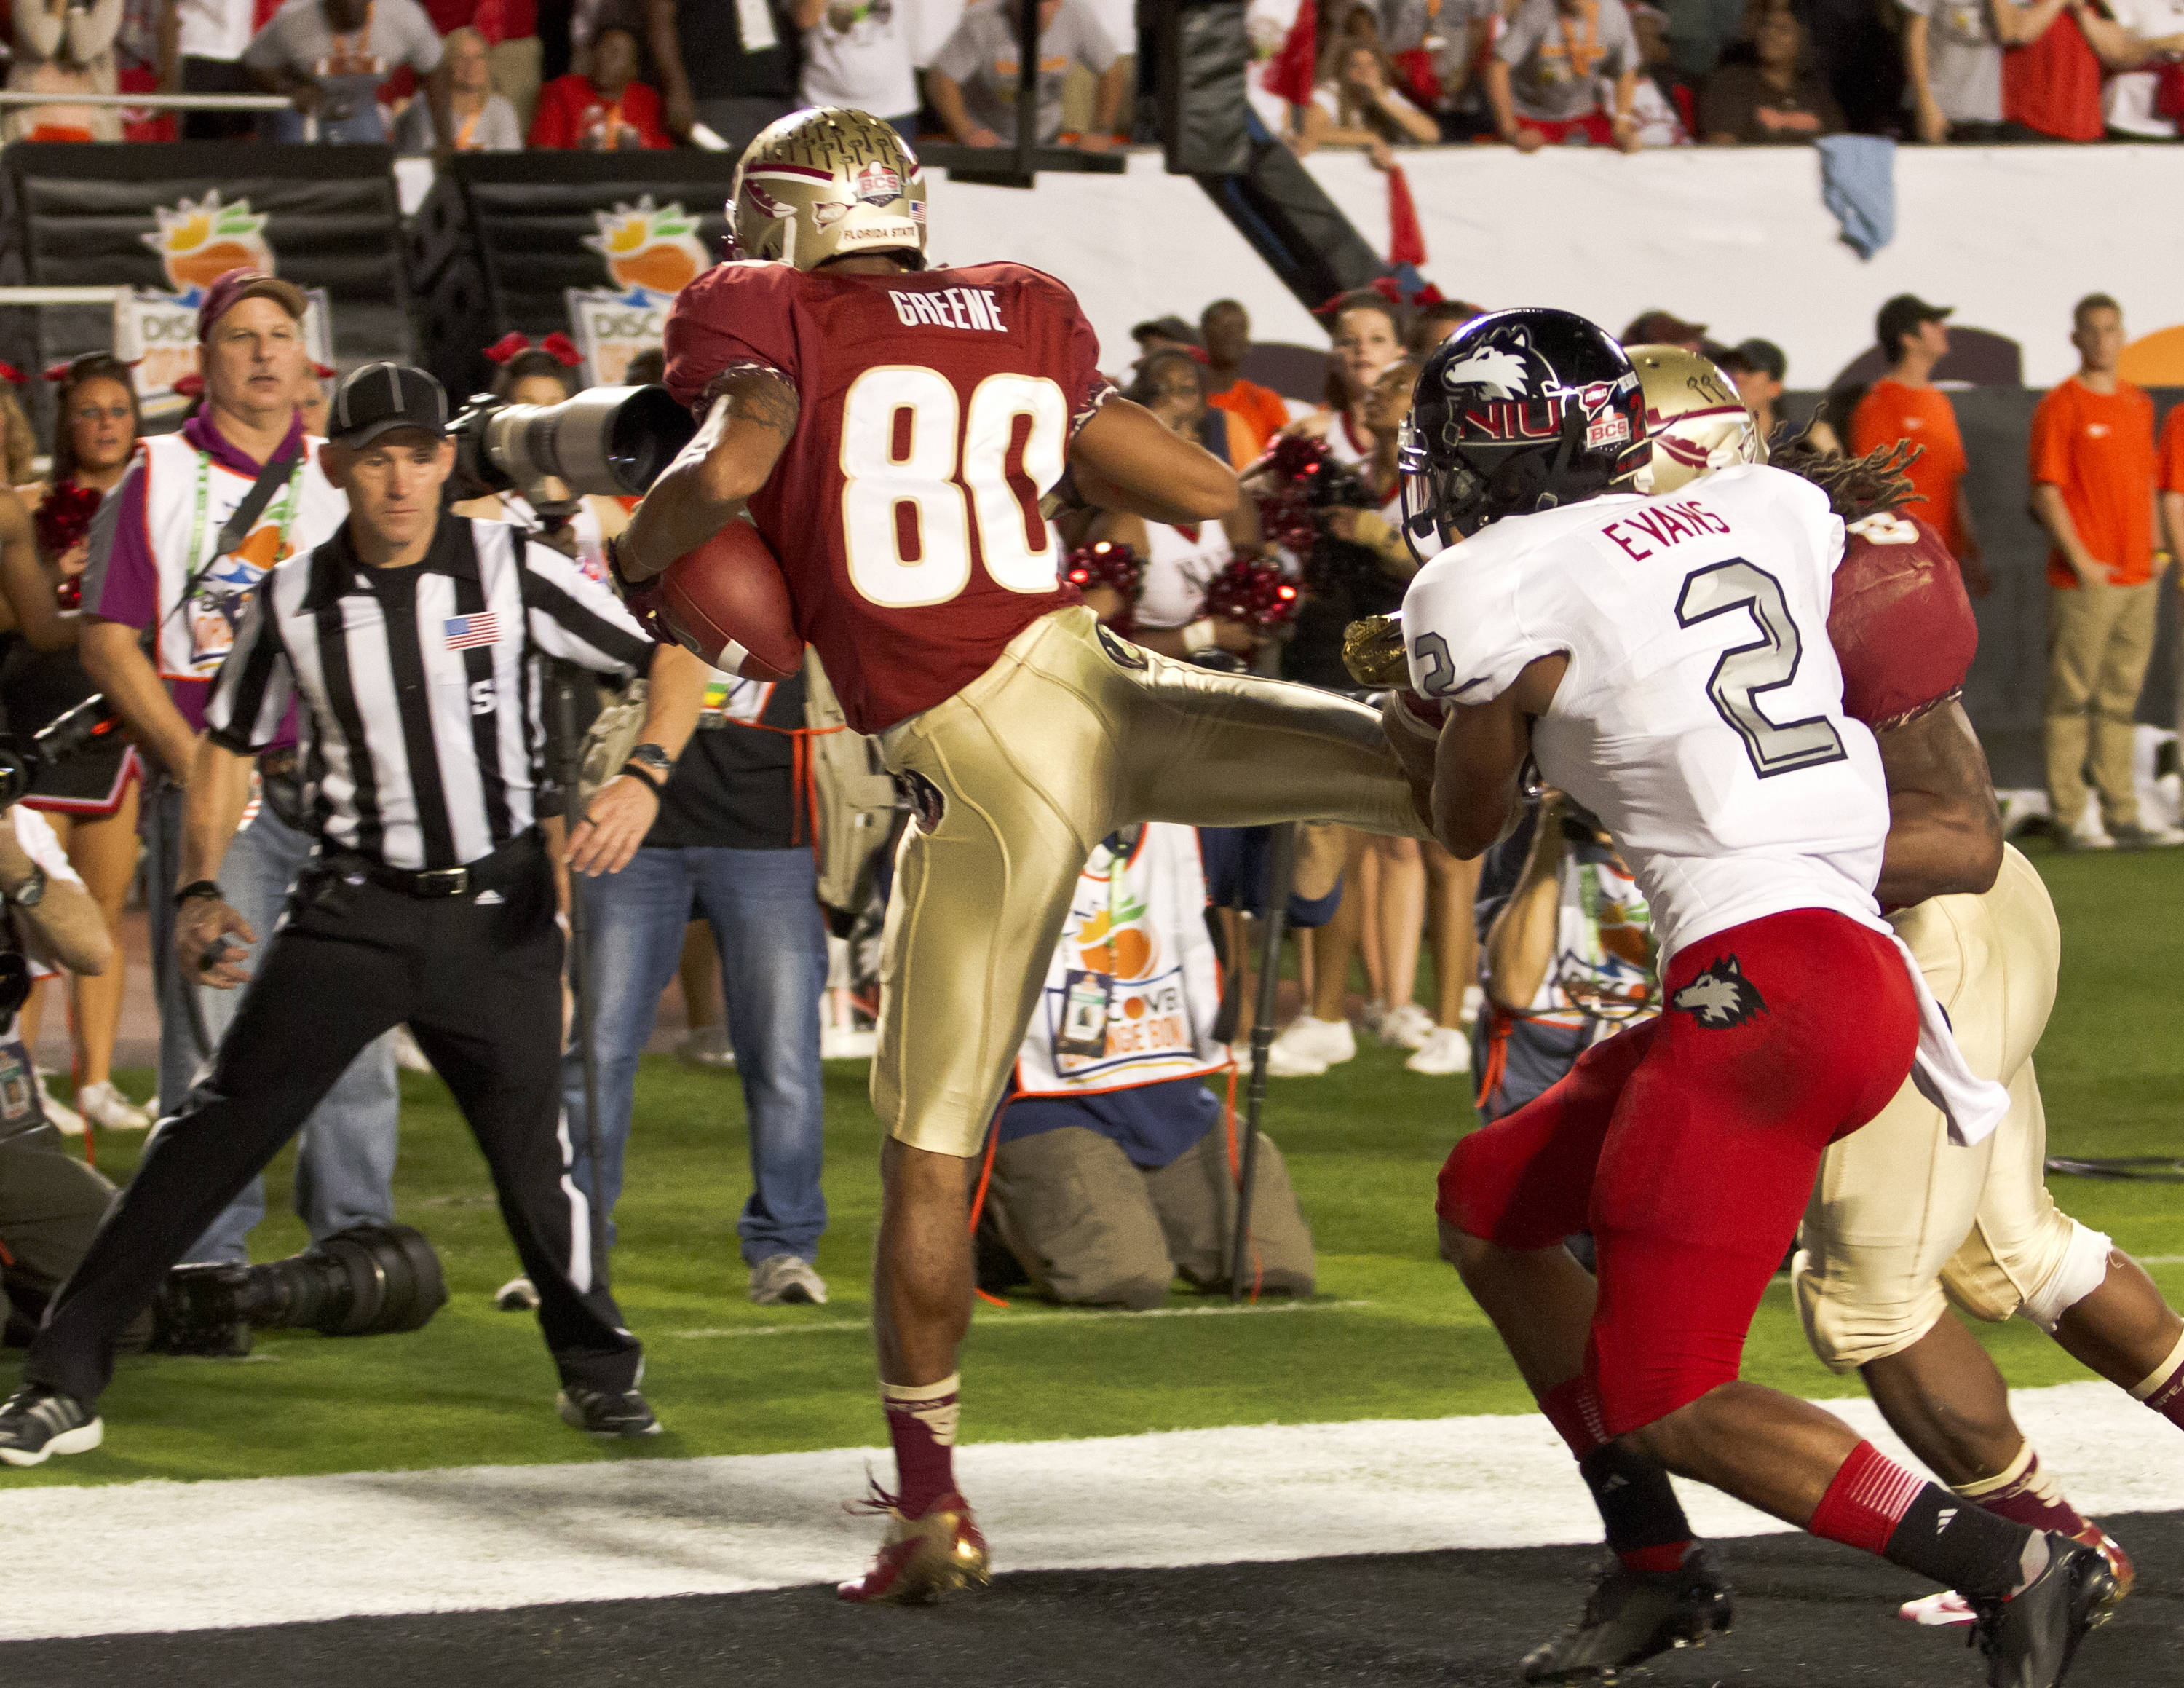 Rashad Greene (80), scoring a touchdown with 11 seconds left in the first half, FSU vs No. Illinois, 01/01/13. (Photo by Steve Musco)